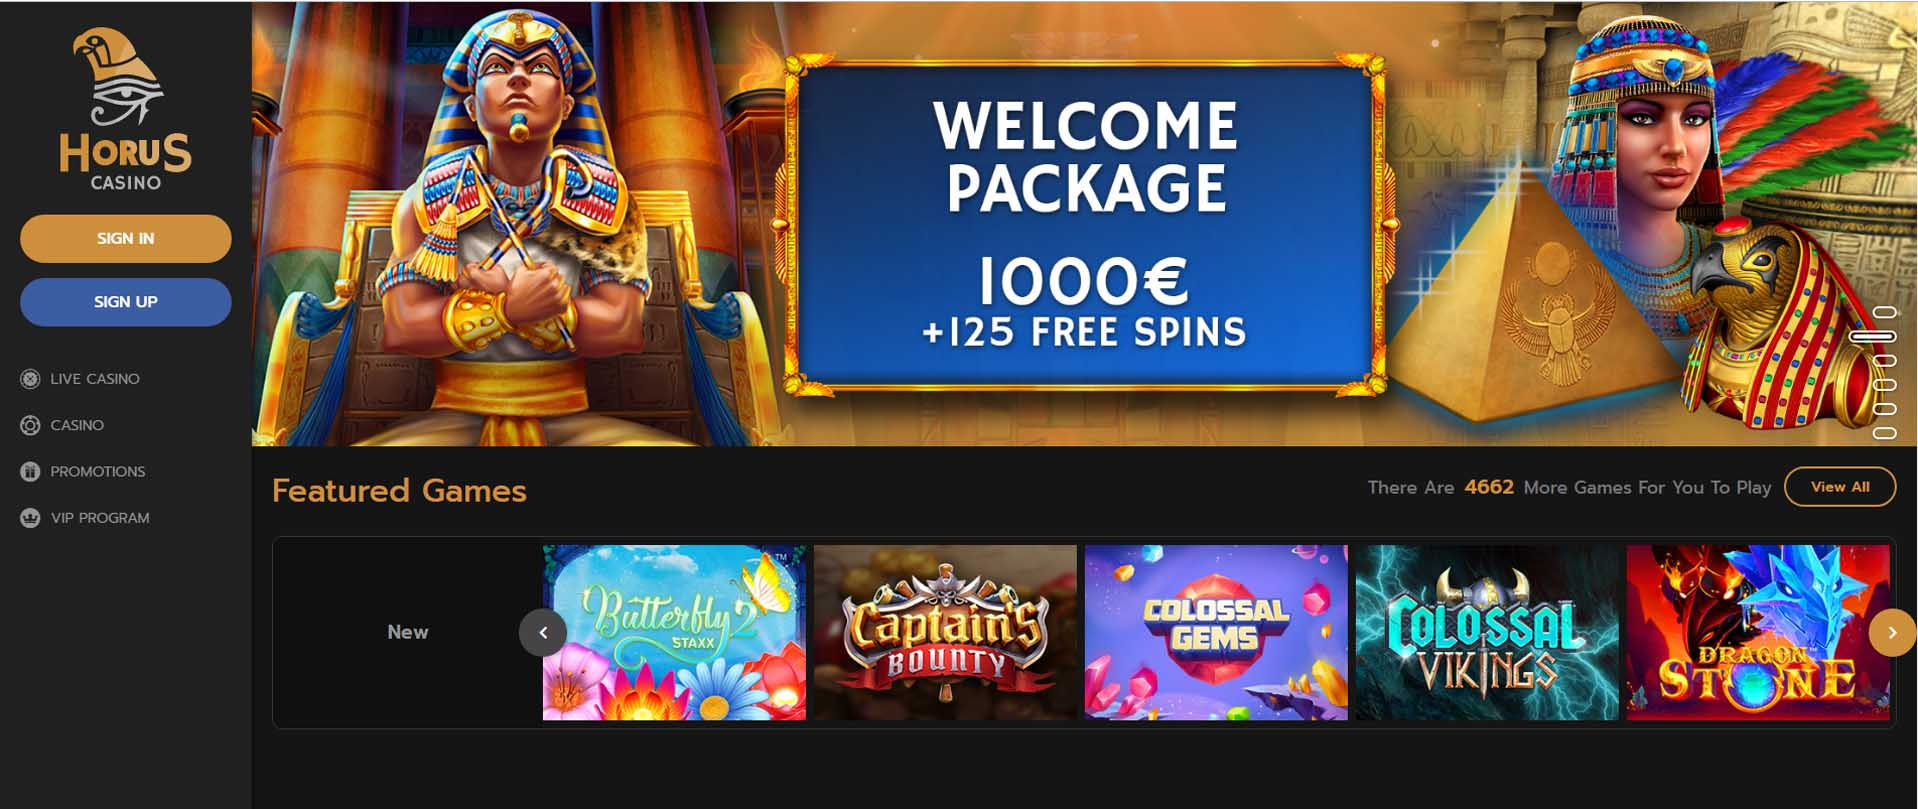 Online casino system review 2 player lilo and stitch games